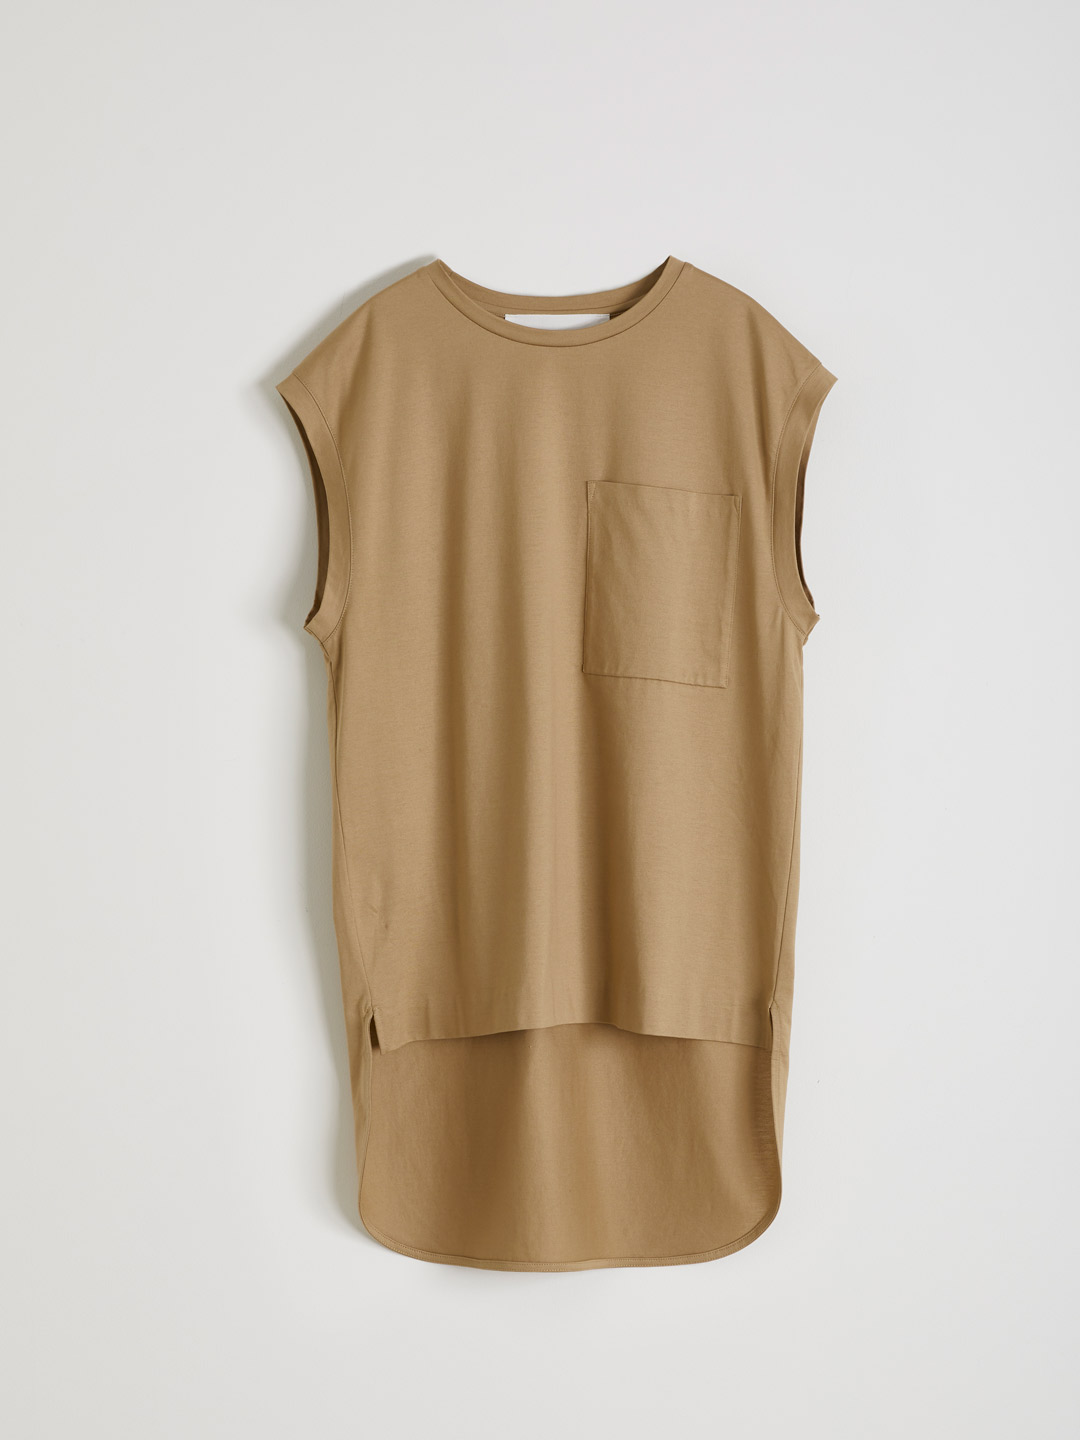 French Sleeve T-shirt - Beige